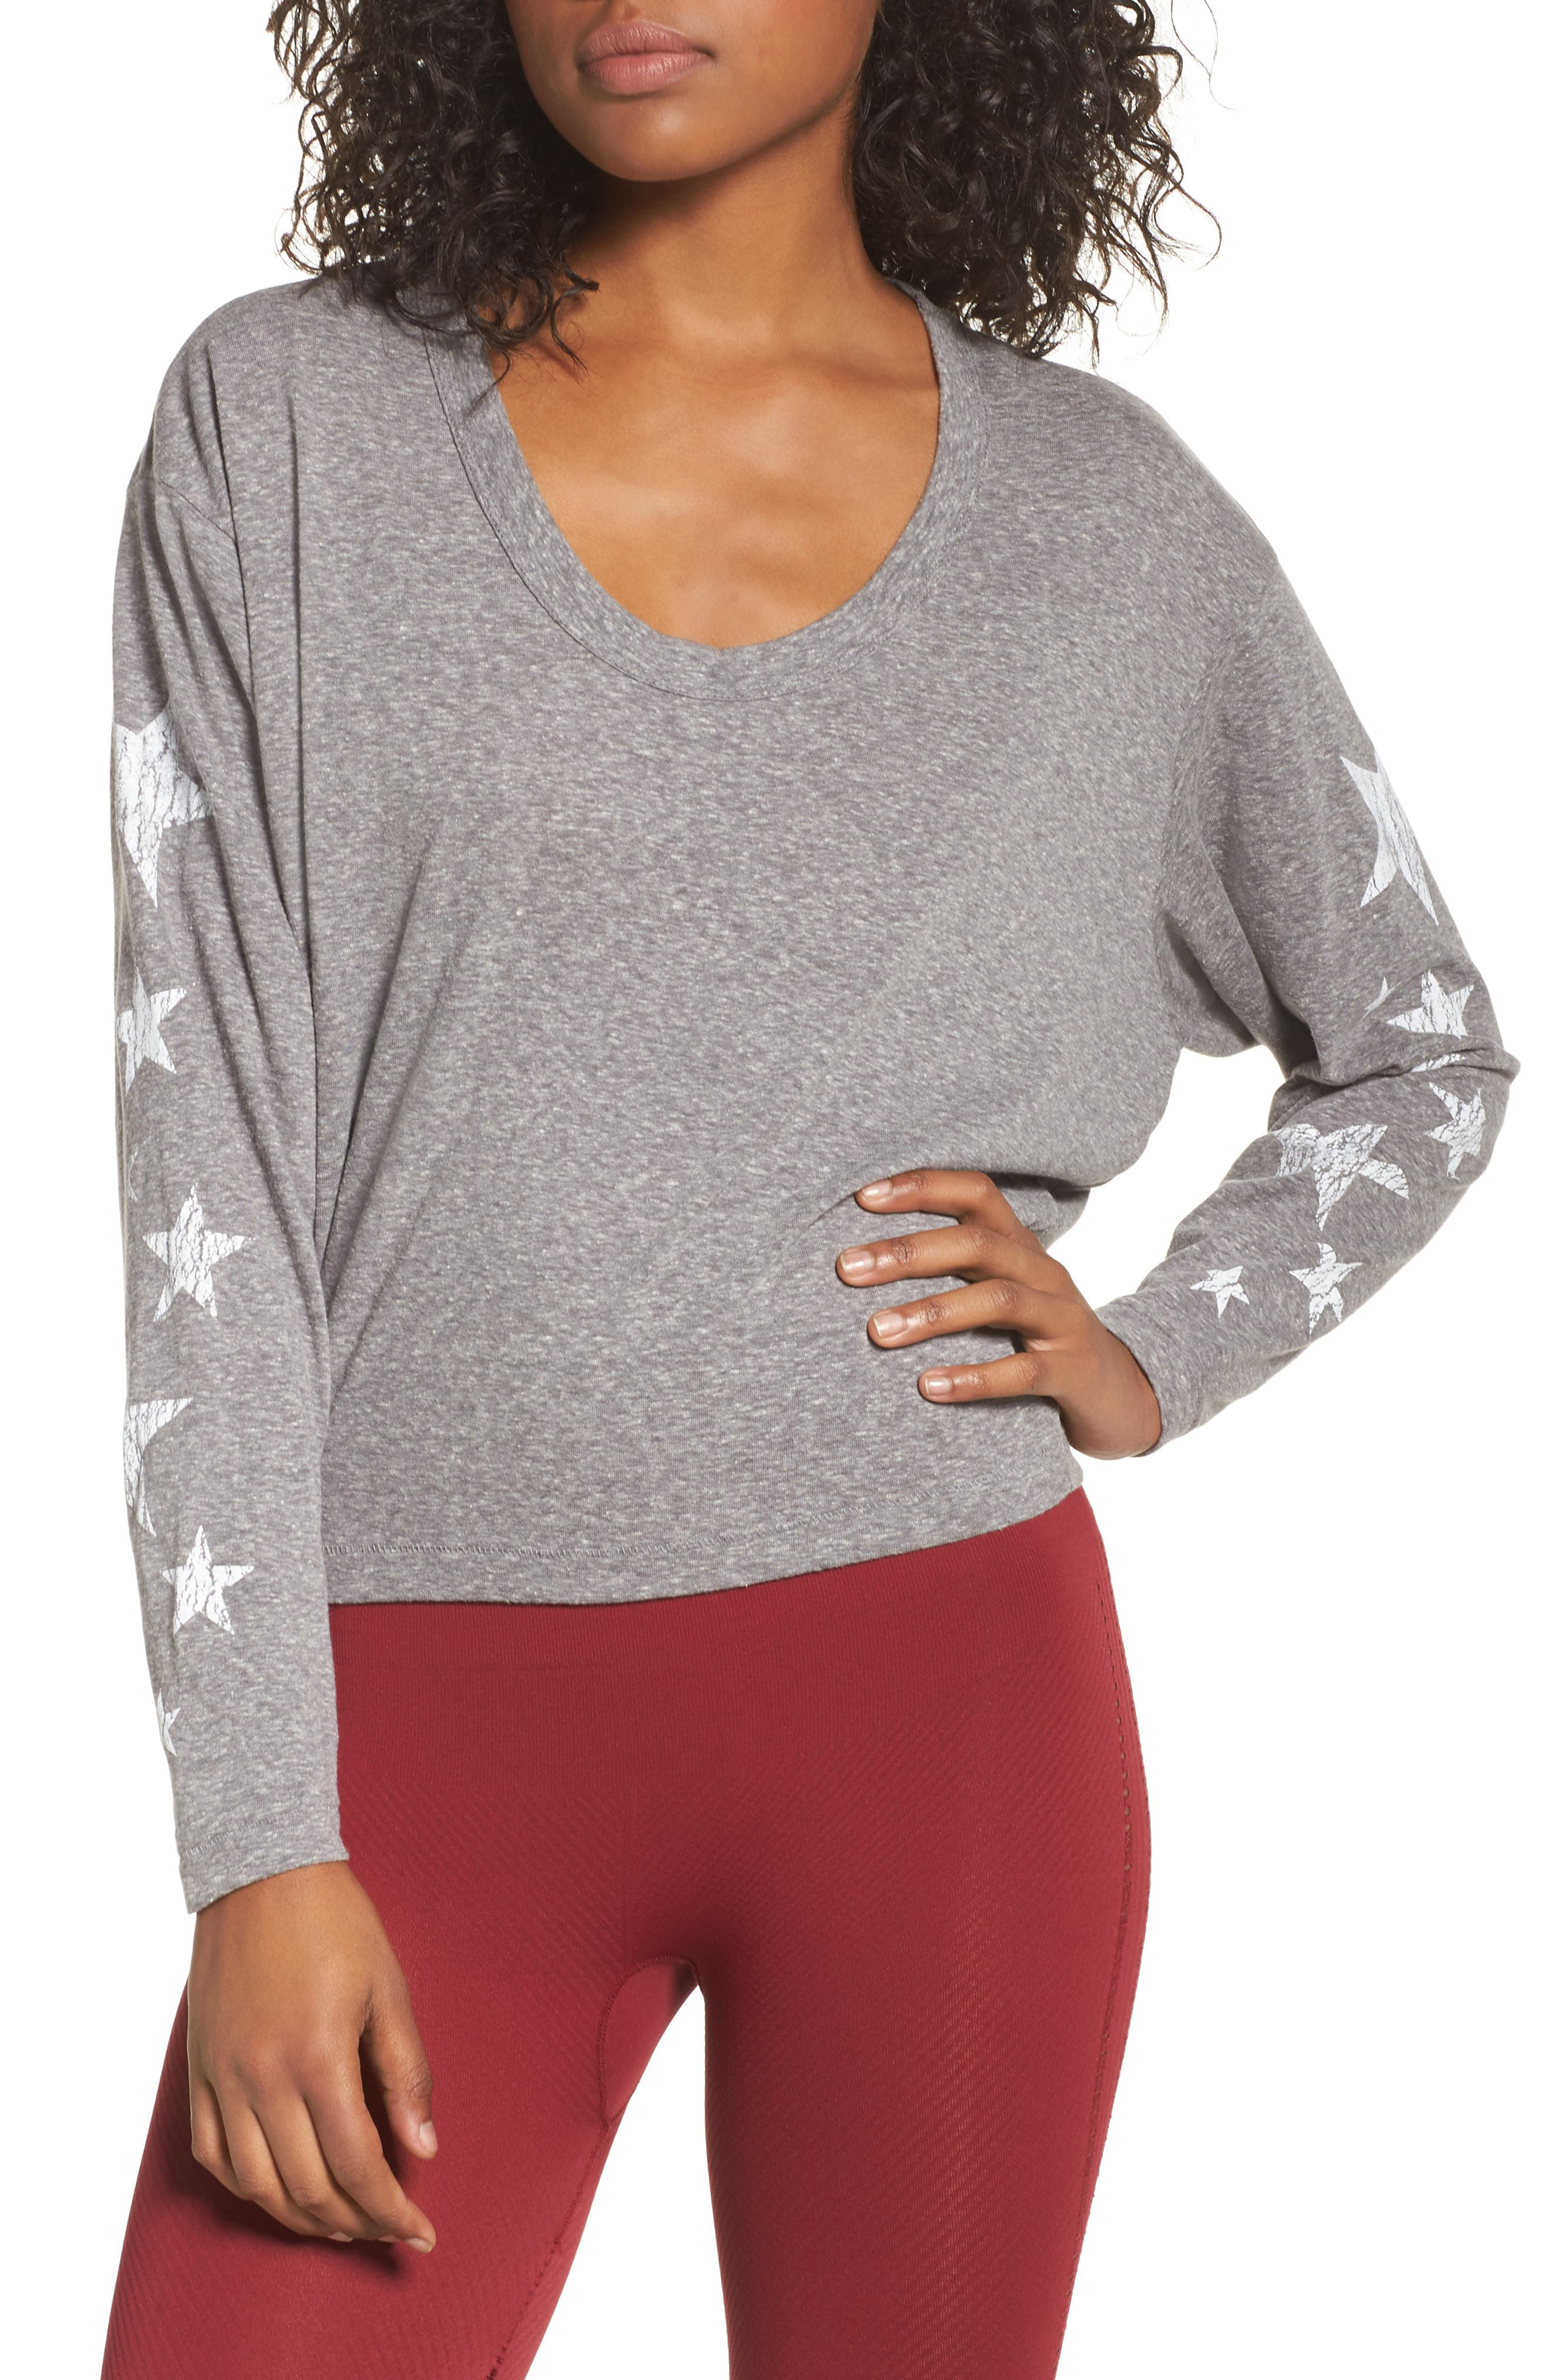 Free People Melrose Star Graphic Top,                         Main,                         color, Grey